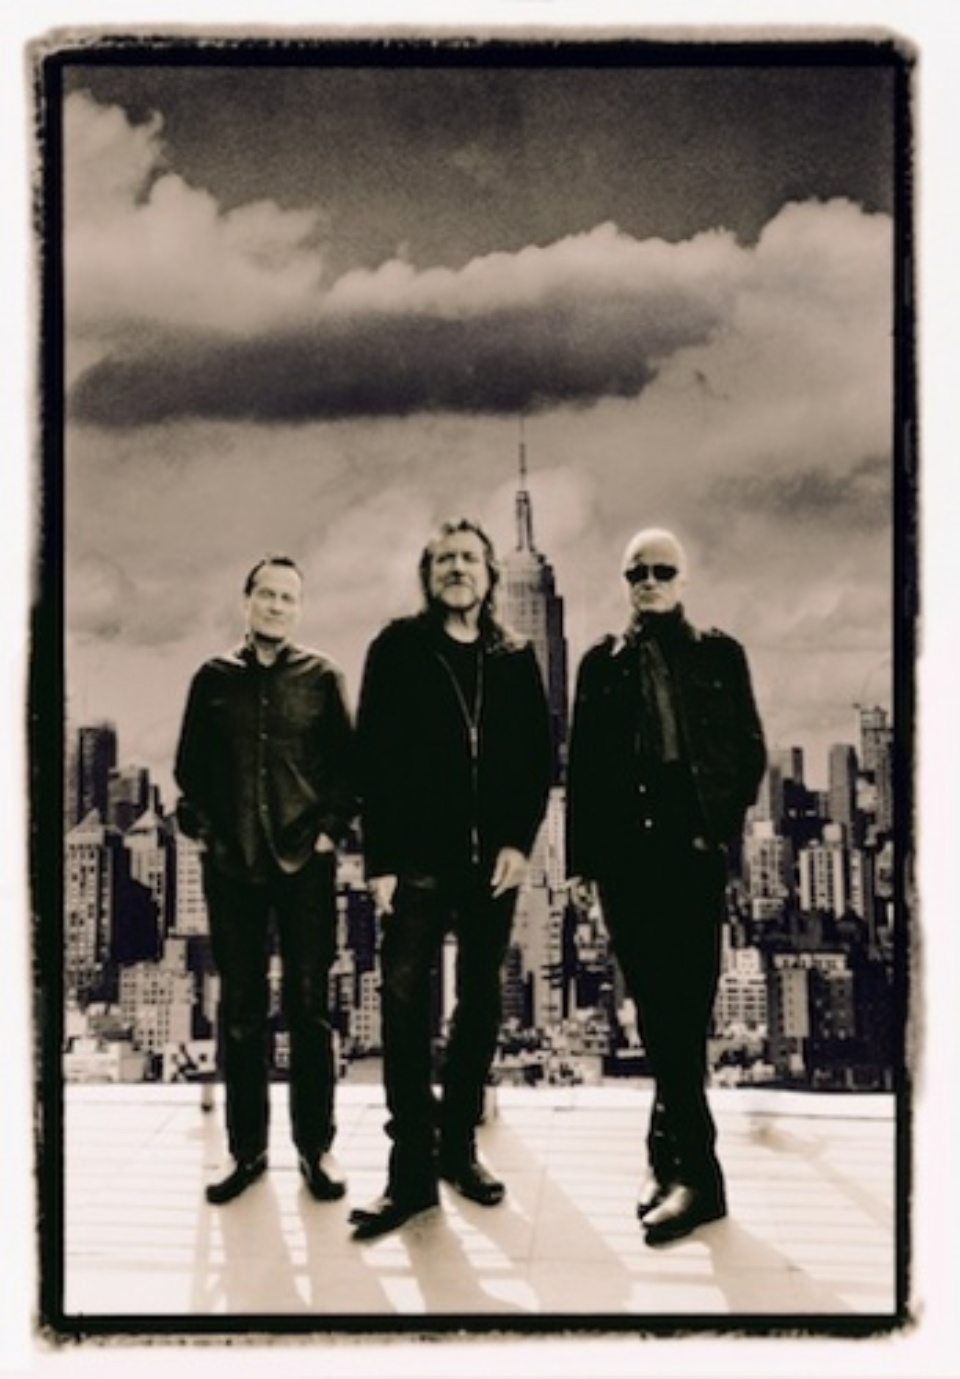 Ross Halfin: Led Zeppelin The Rooftop of the Royalton Hotel, NYC, 2012